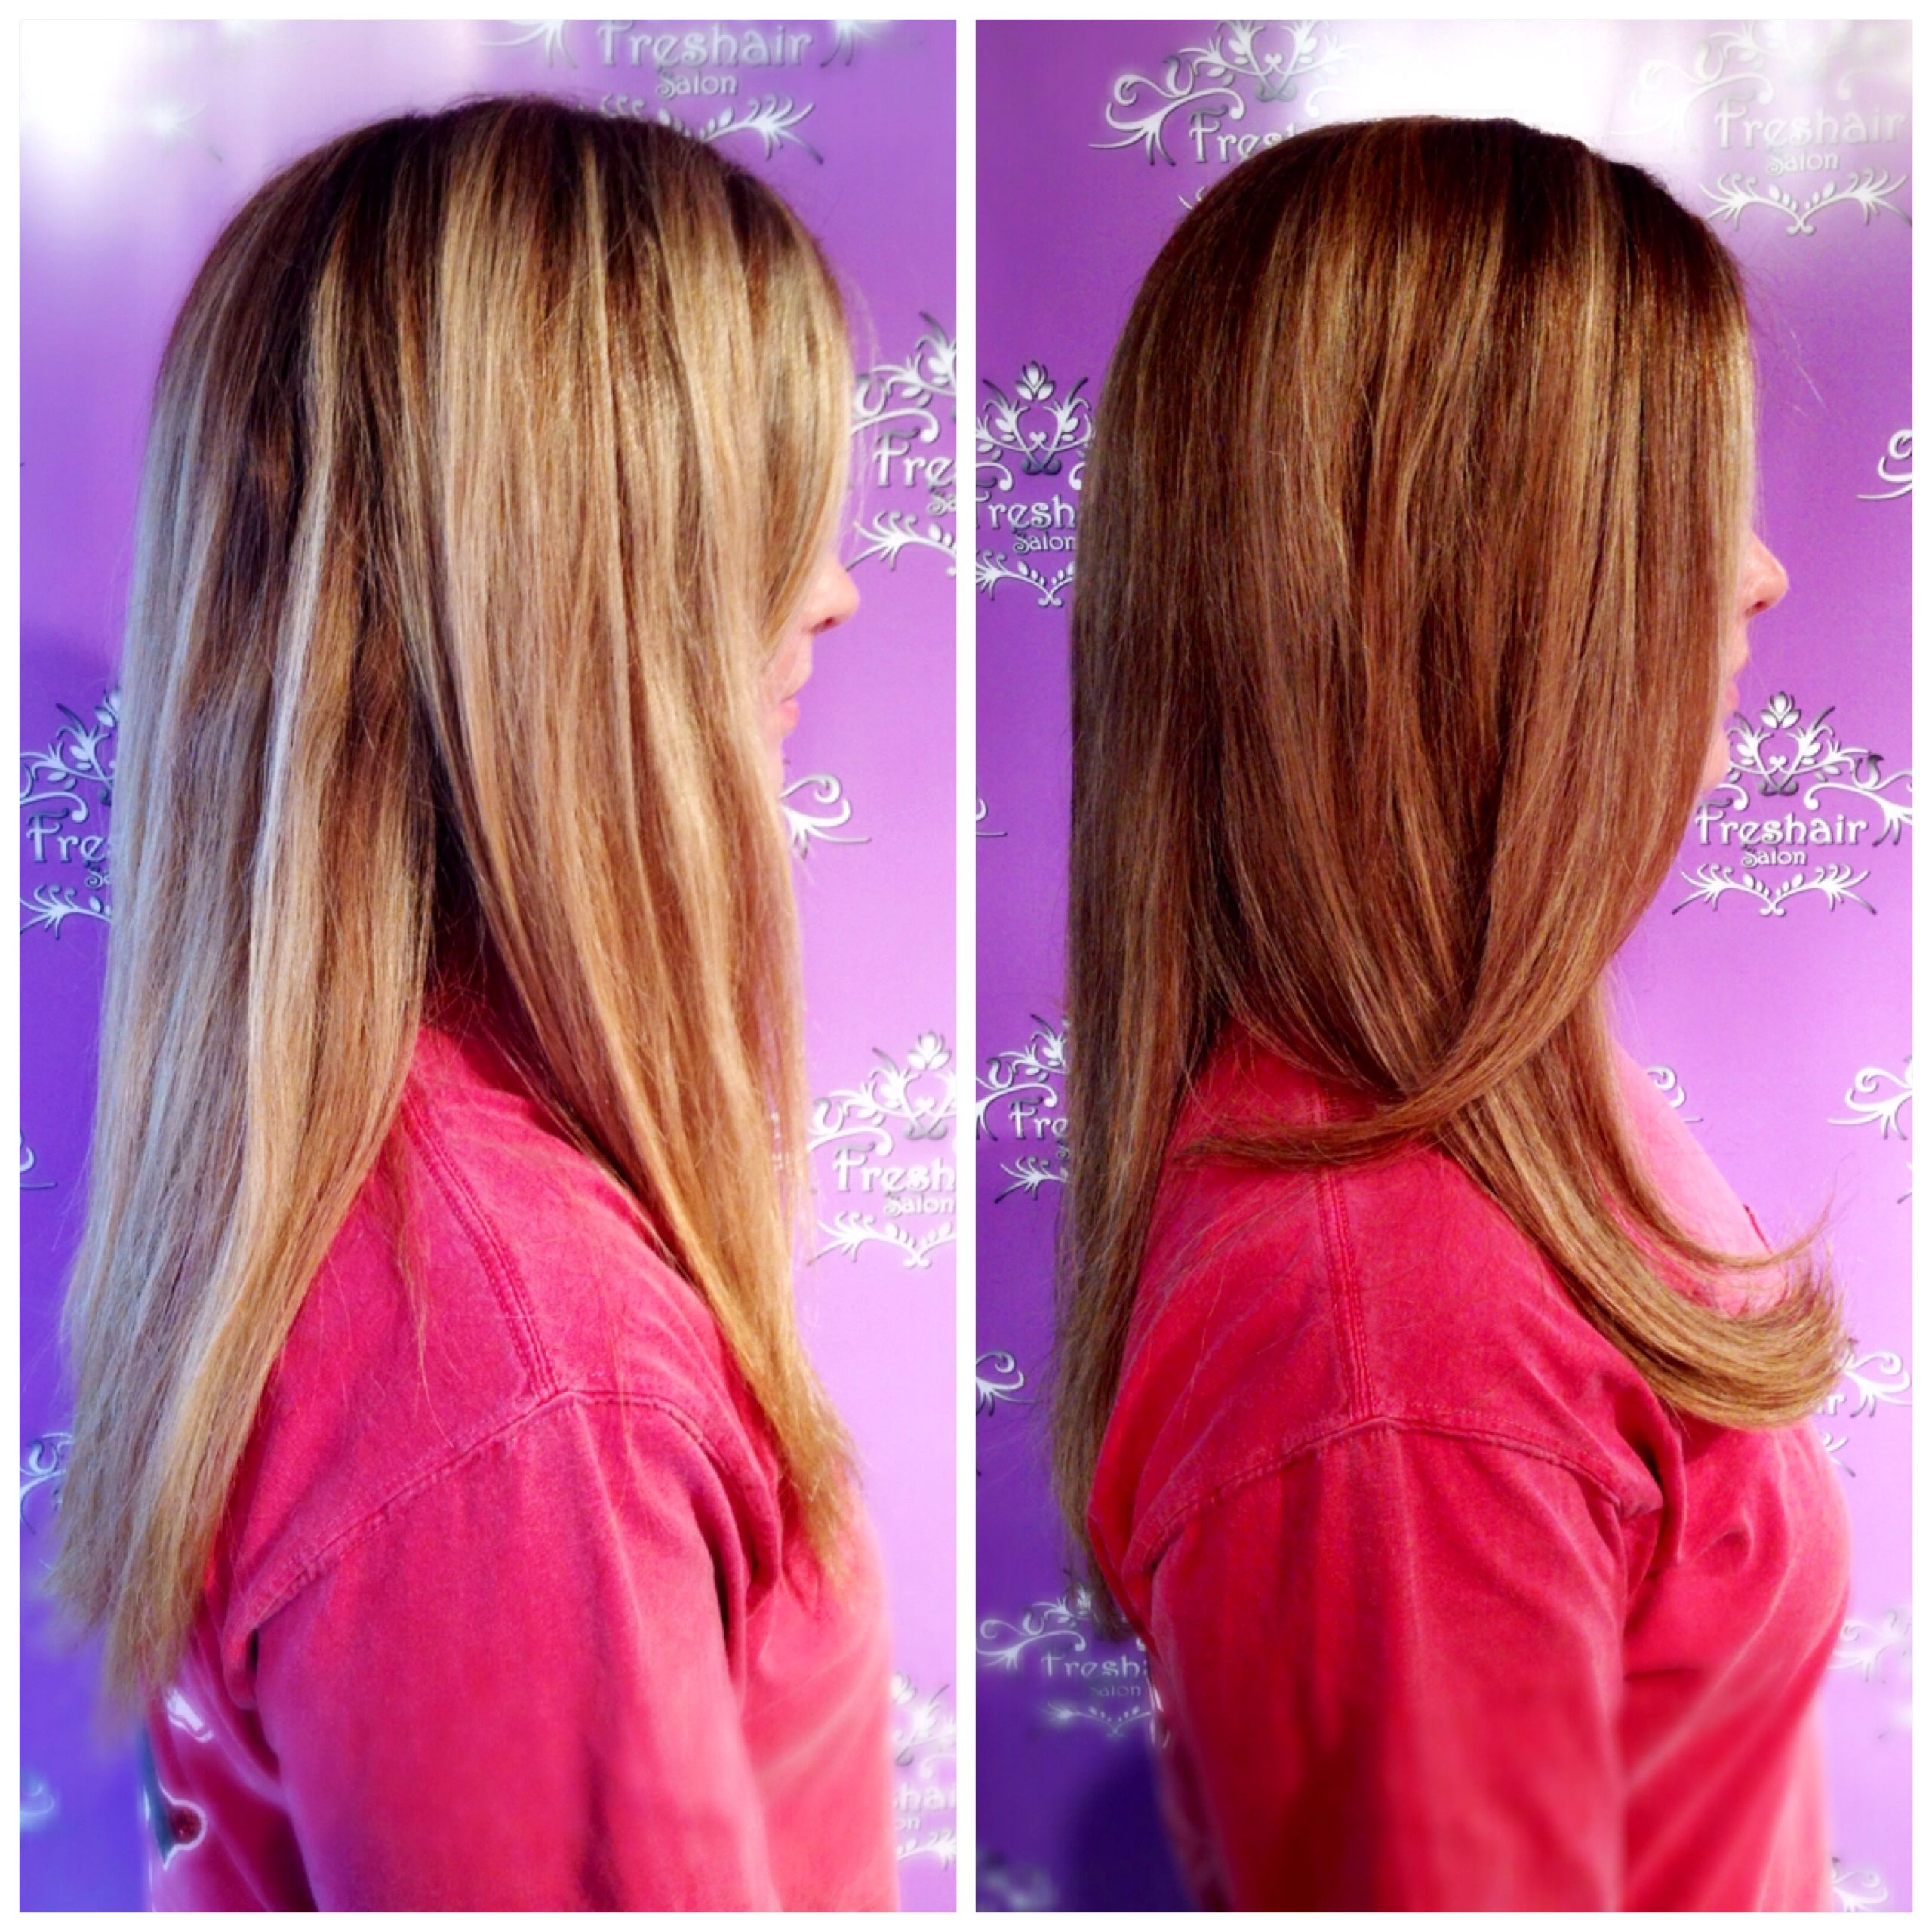 Beautiful mocha and caramel keune color for this guest stylist beautiful mocha and caramel keune color for this guest stylist kara cashion cashionkara pmusecretfo Choice Image